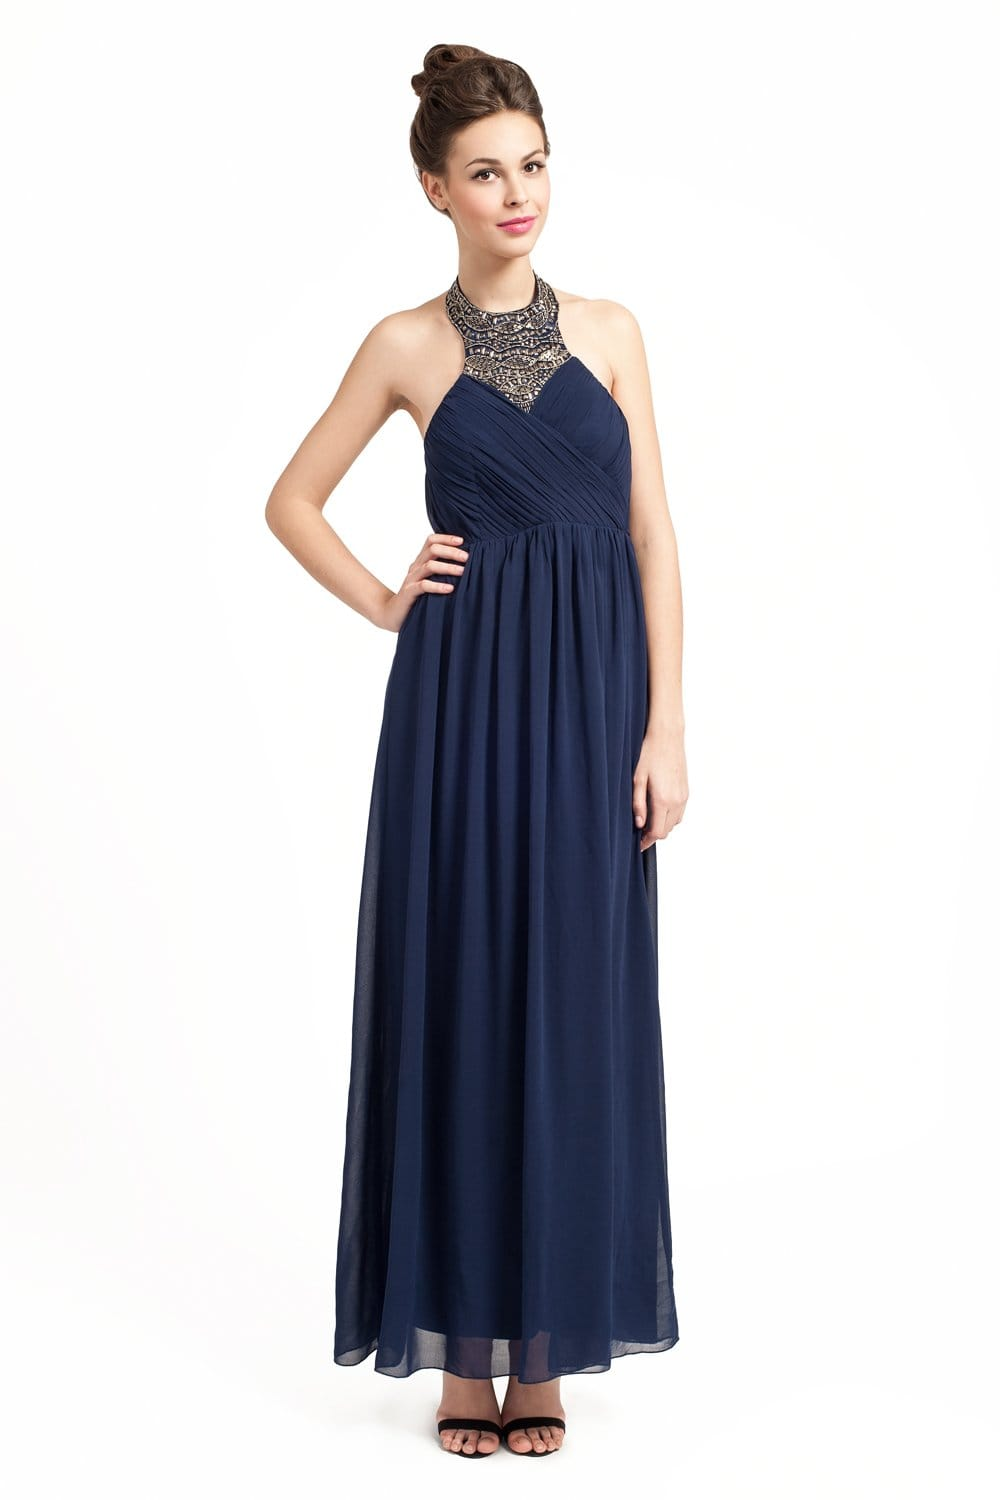 Maxi dresses with sleeves for weddings with sleeves for Navy dresses for weddings